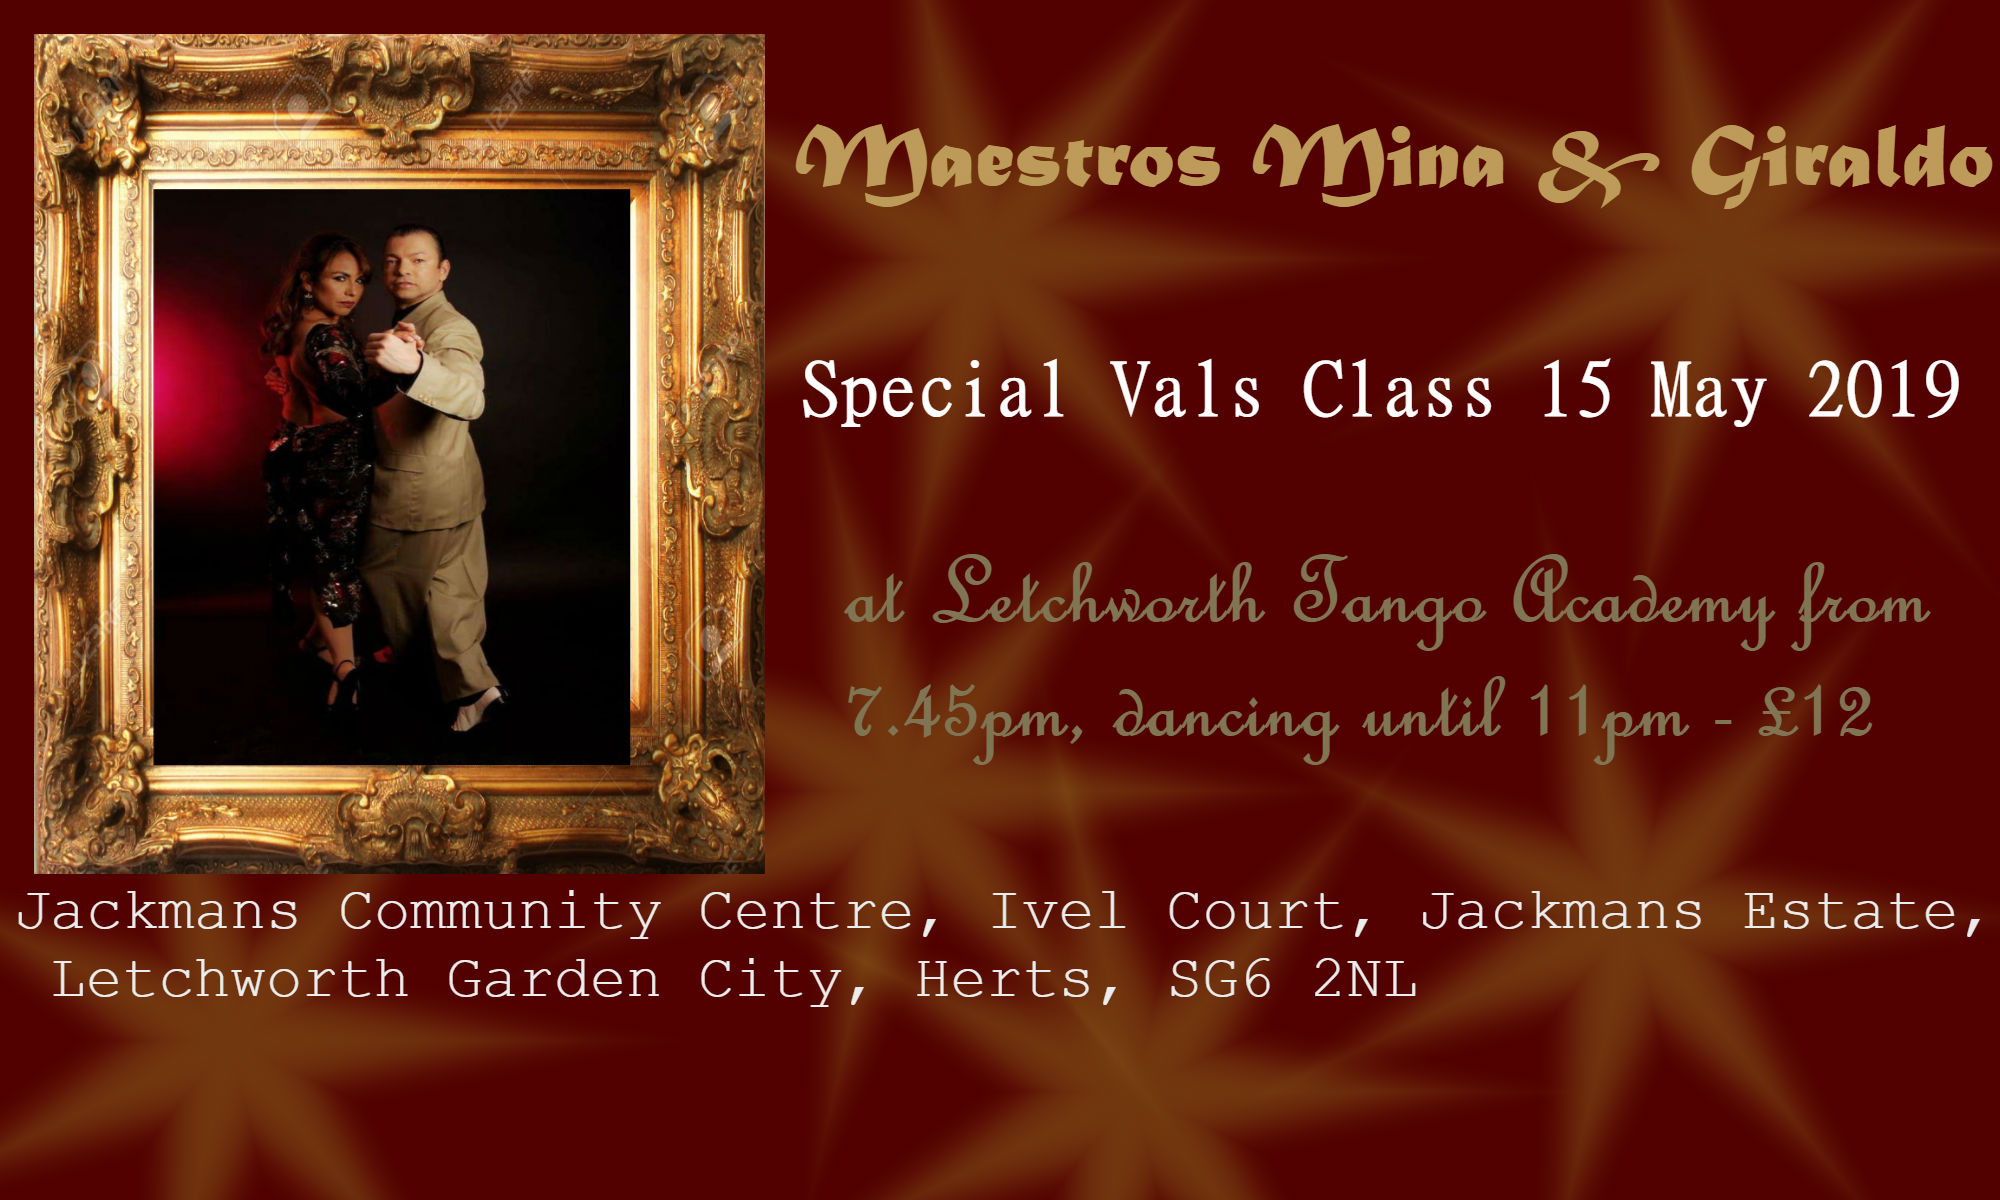 Special Vals Class by Mina & Giraldo @ Jackmans Community Centre